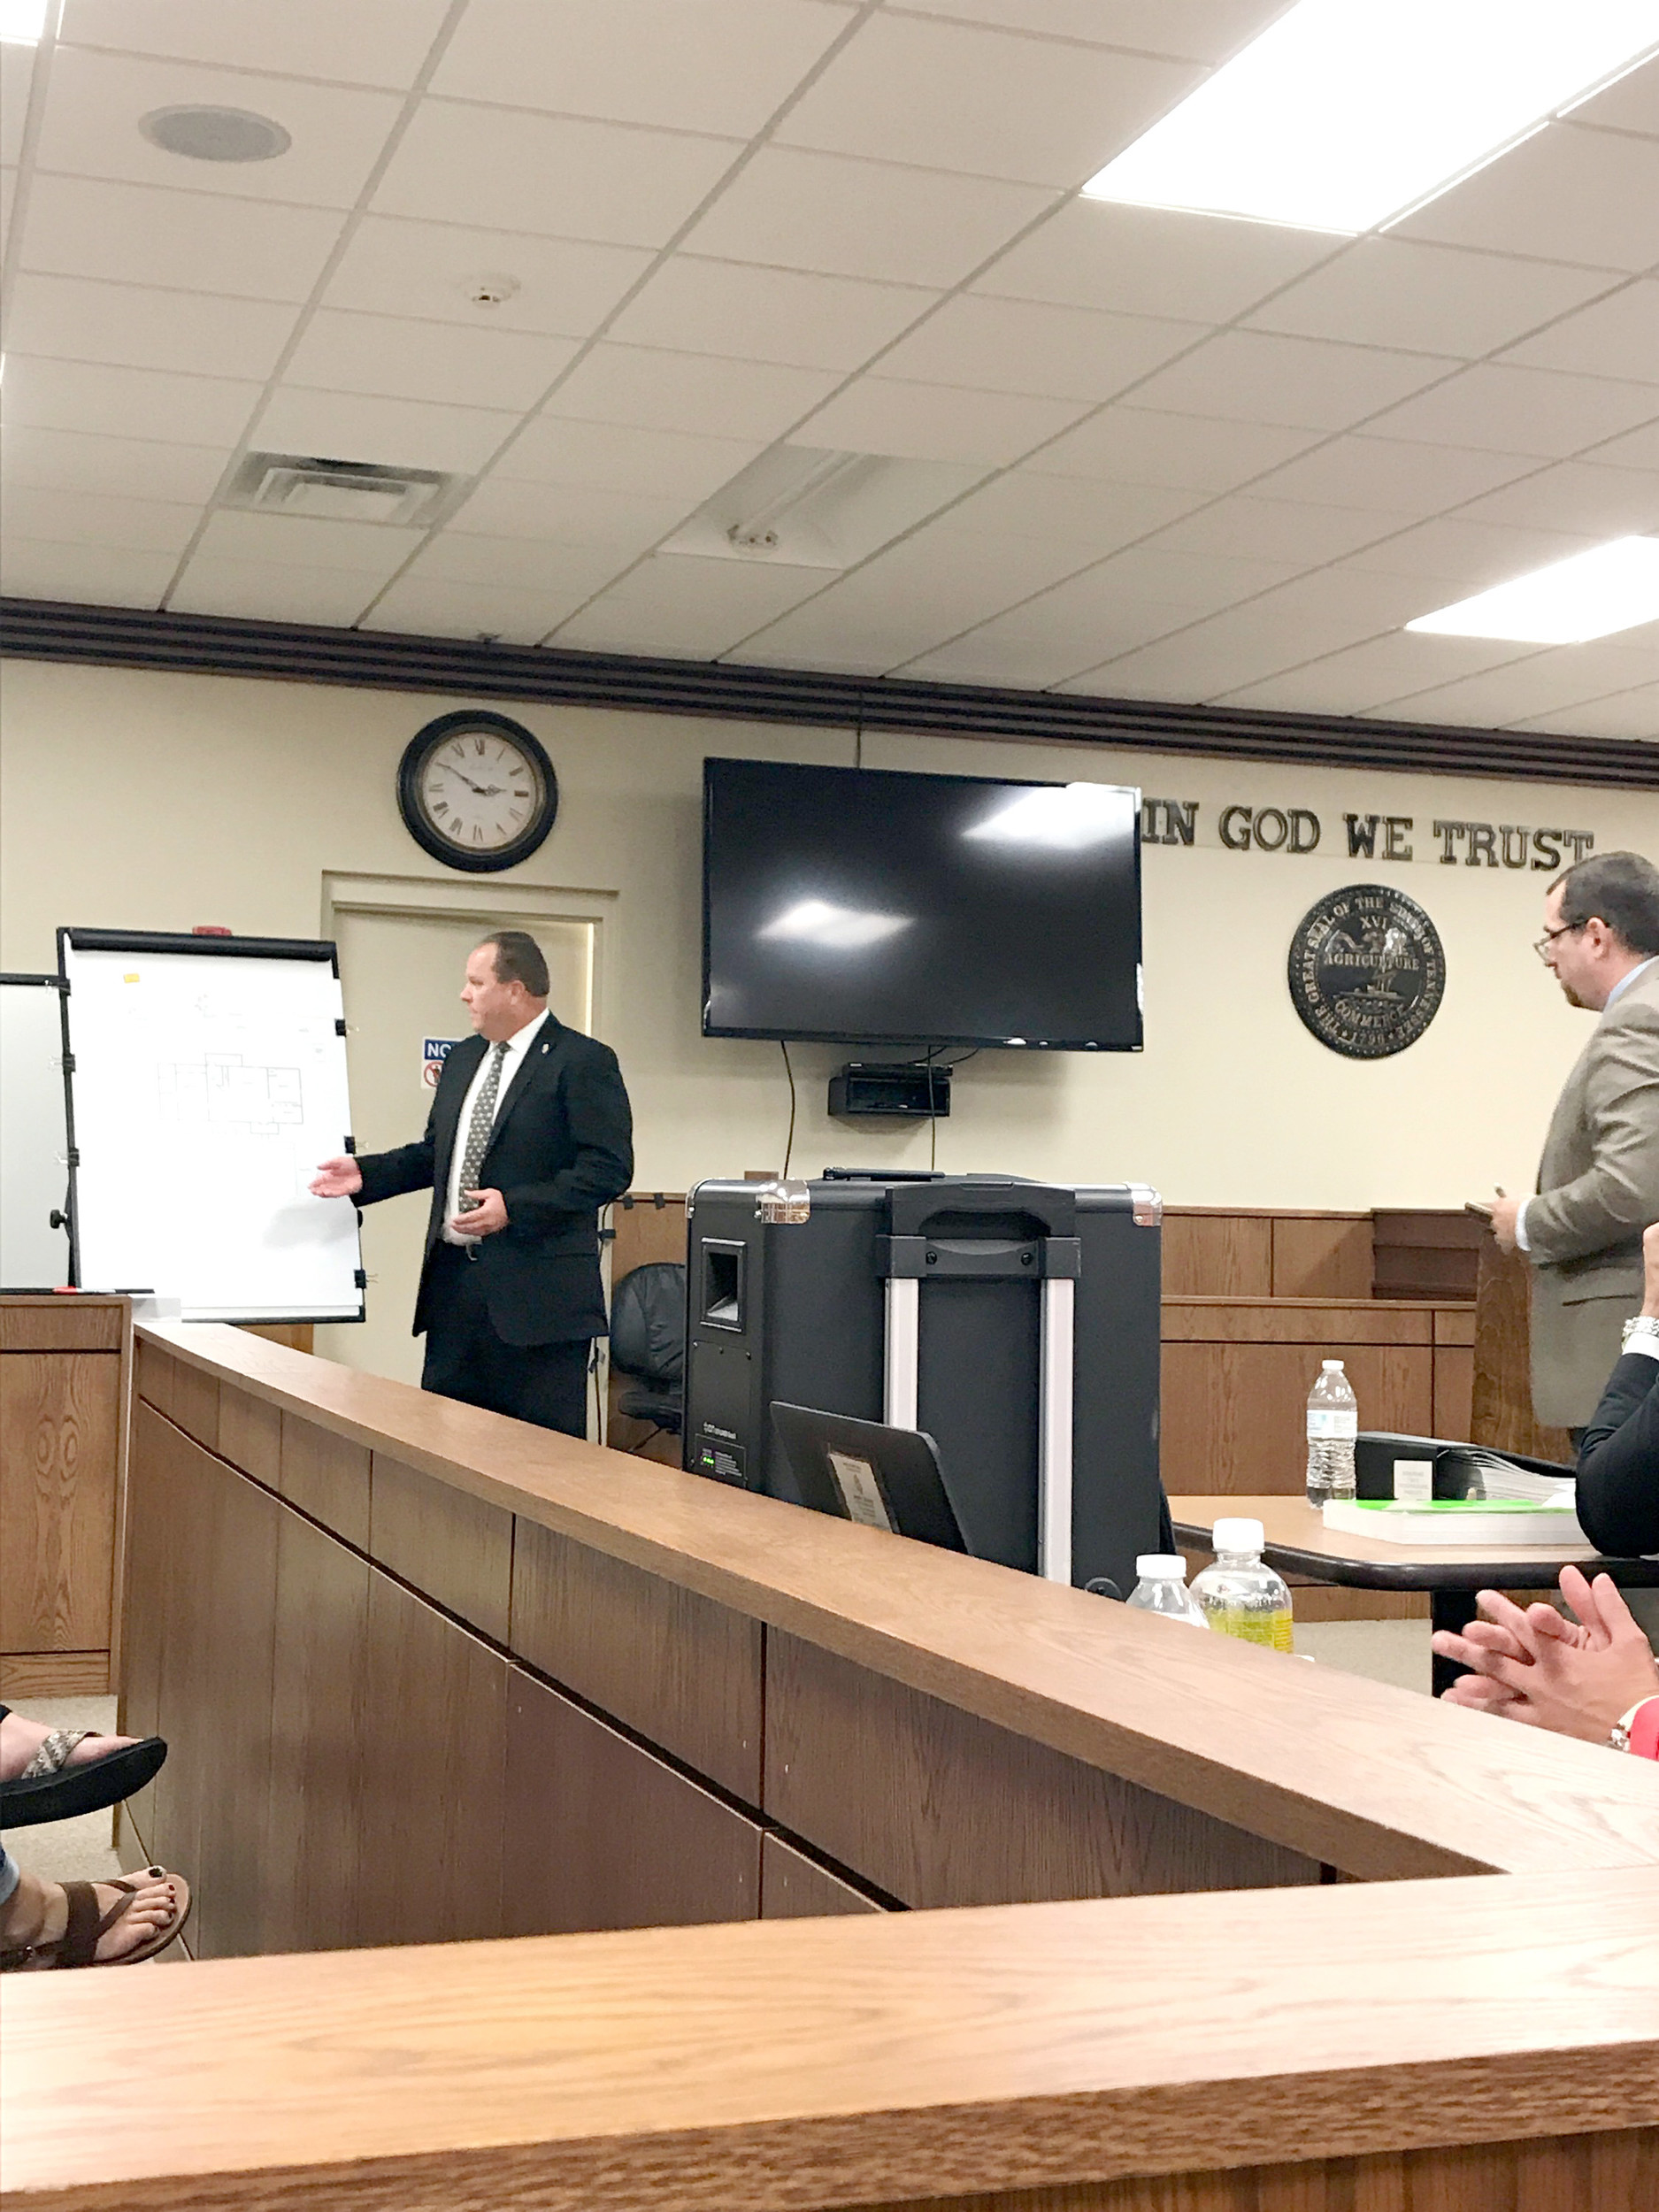 Eight testify in celina murder trial herald citizen tbi special agent steve huntley points out where two shallow graves were found in a diagram ccuart Choice Image